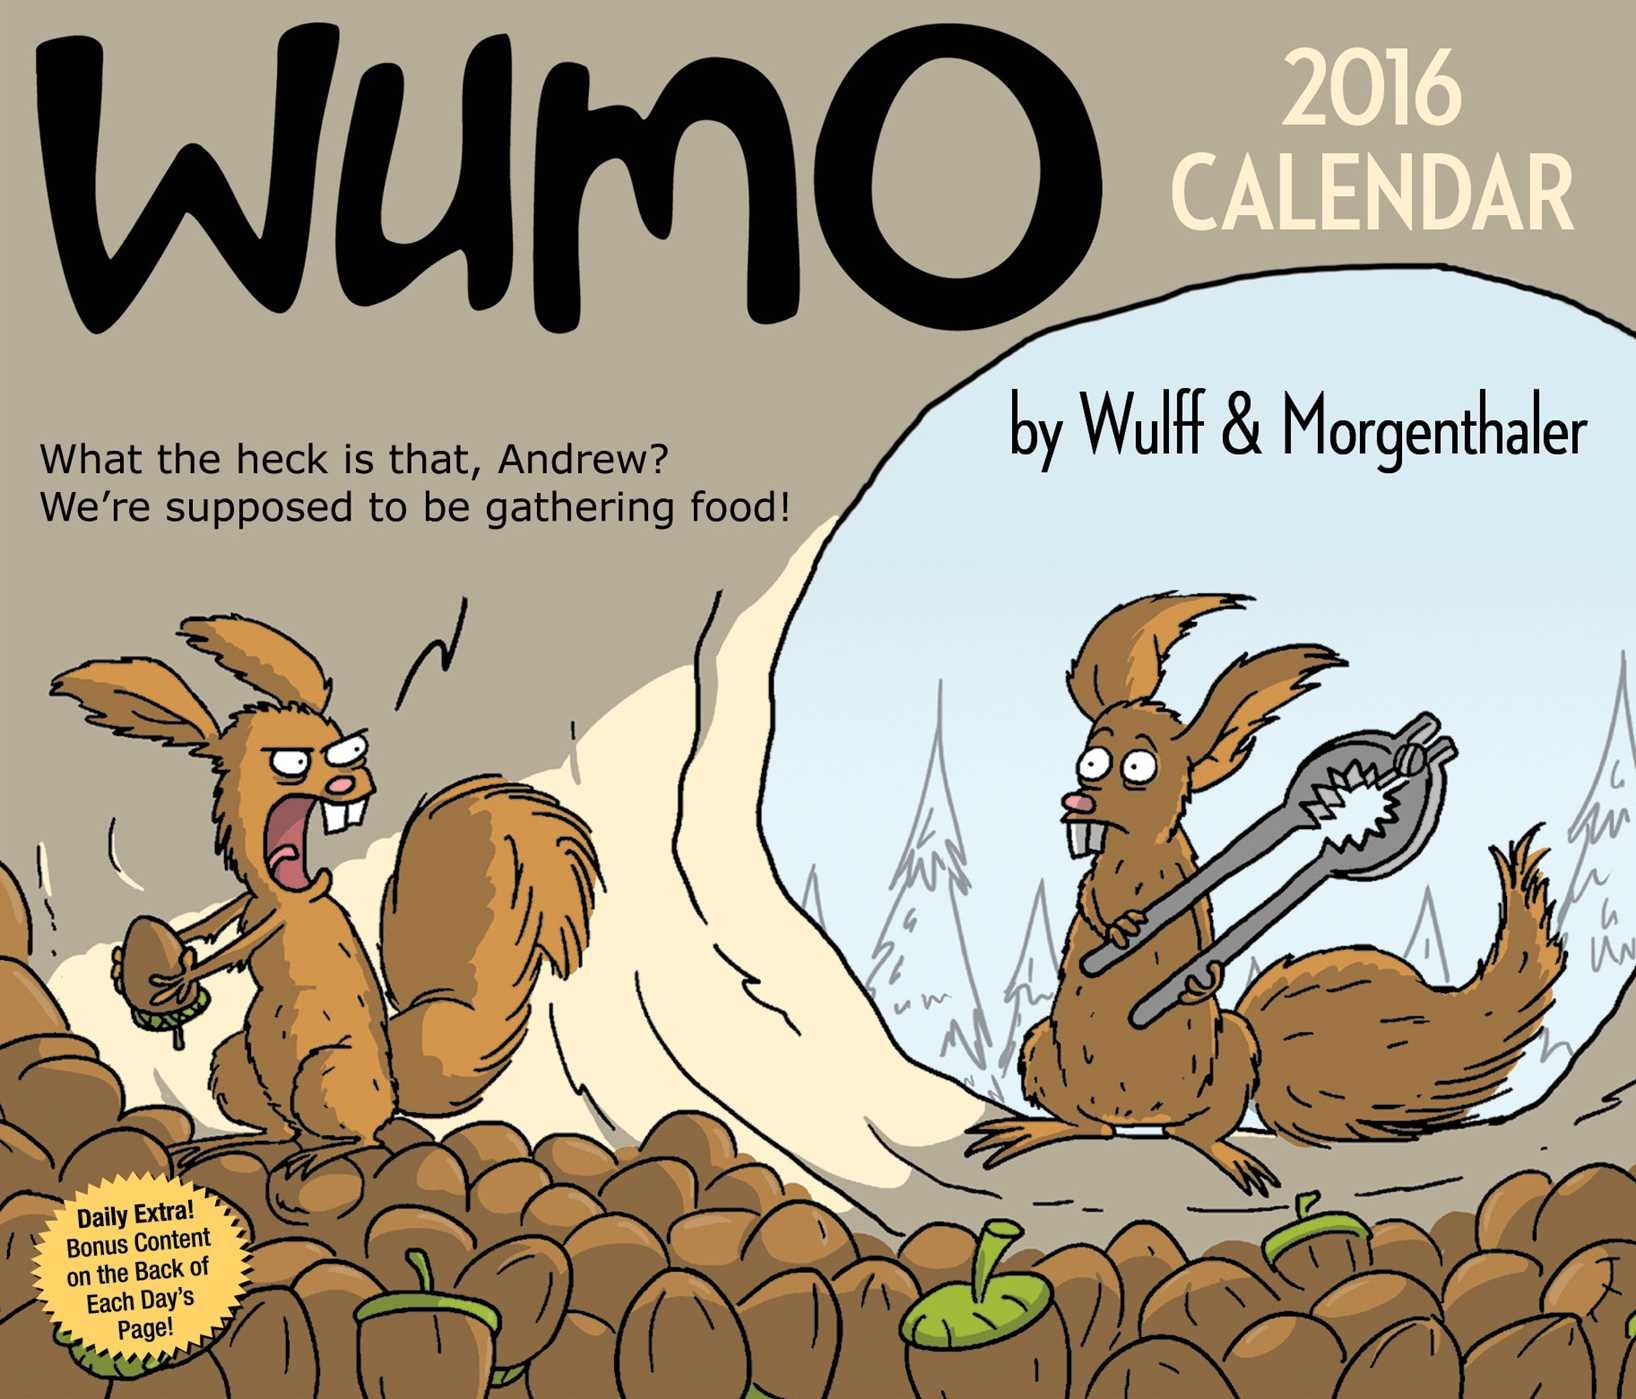 WuMo 2016 Day Day Calendar product image